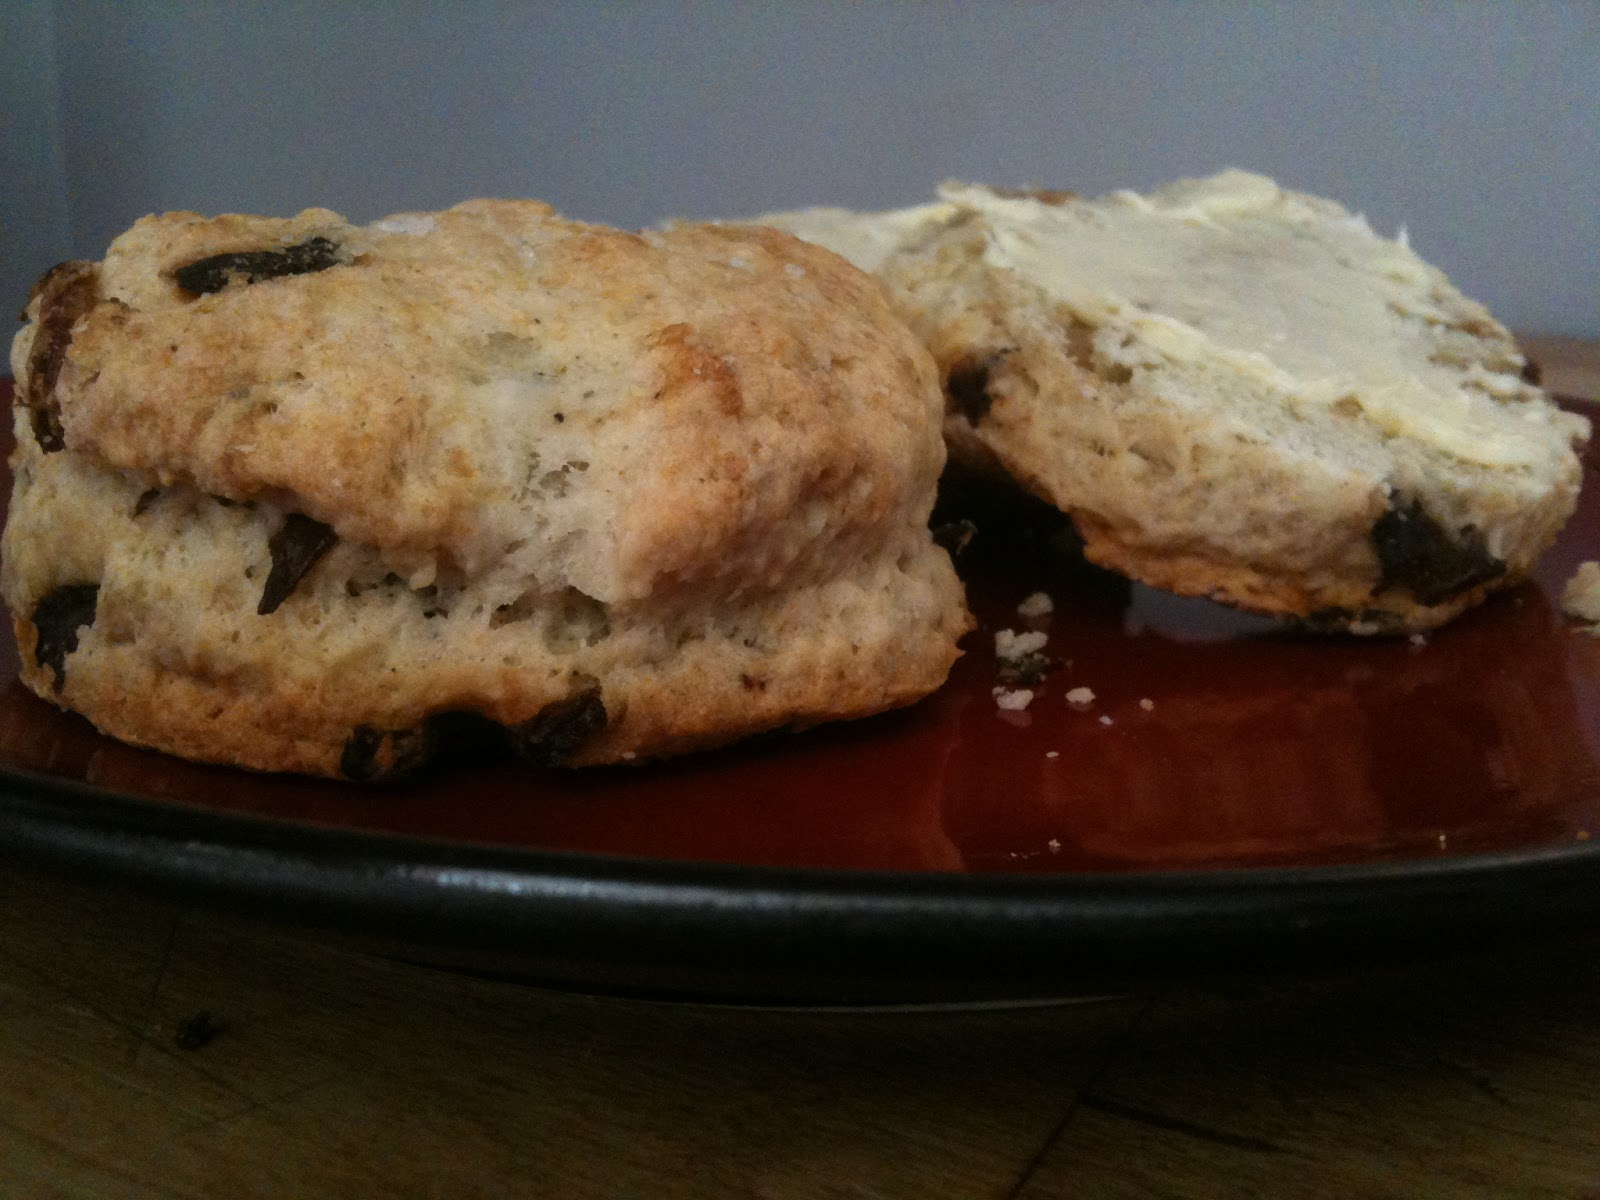 Food Swoon: Caramelized Mushroom and Onion Biscuits